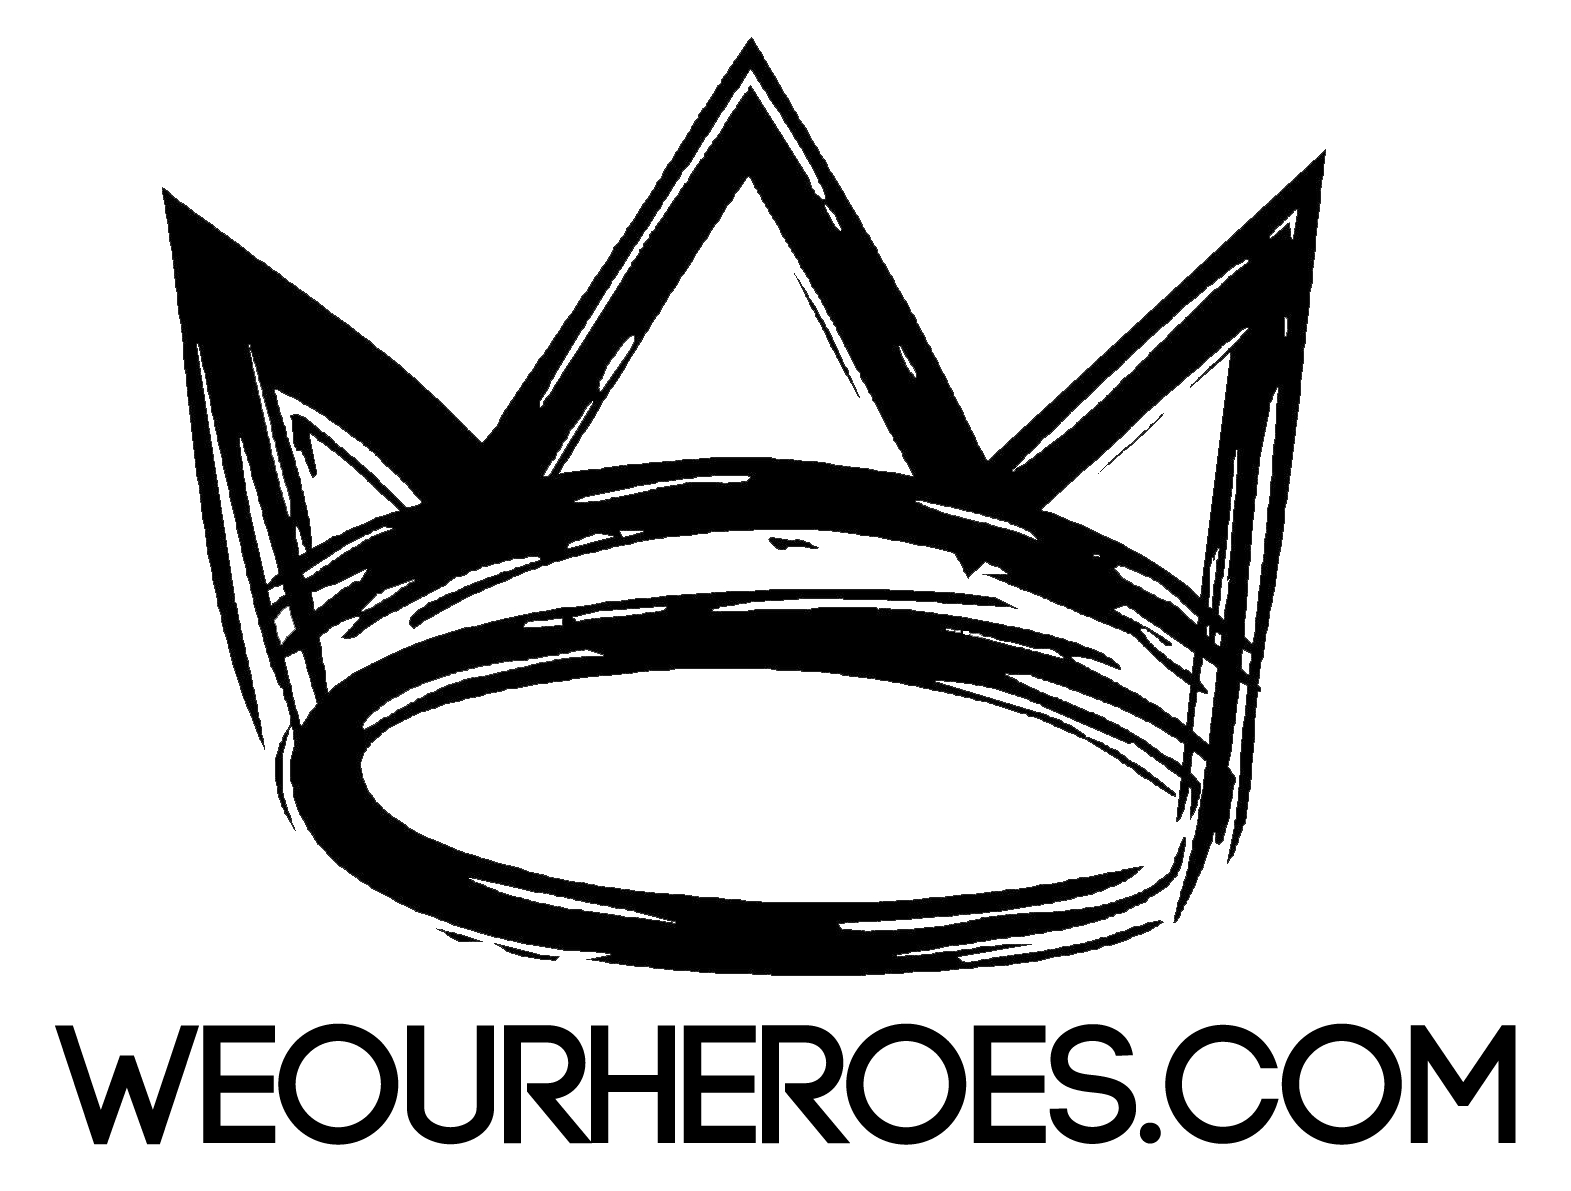 crown logo Google Search (With images) Crown logo